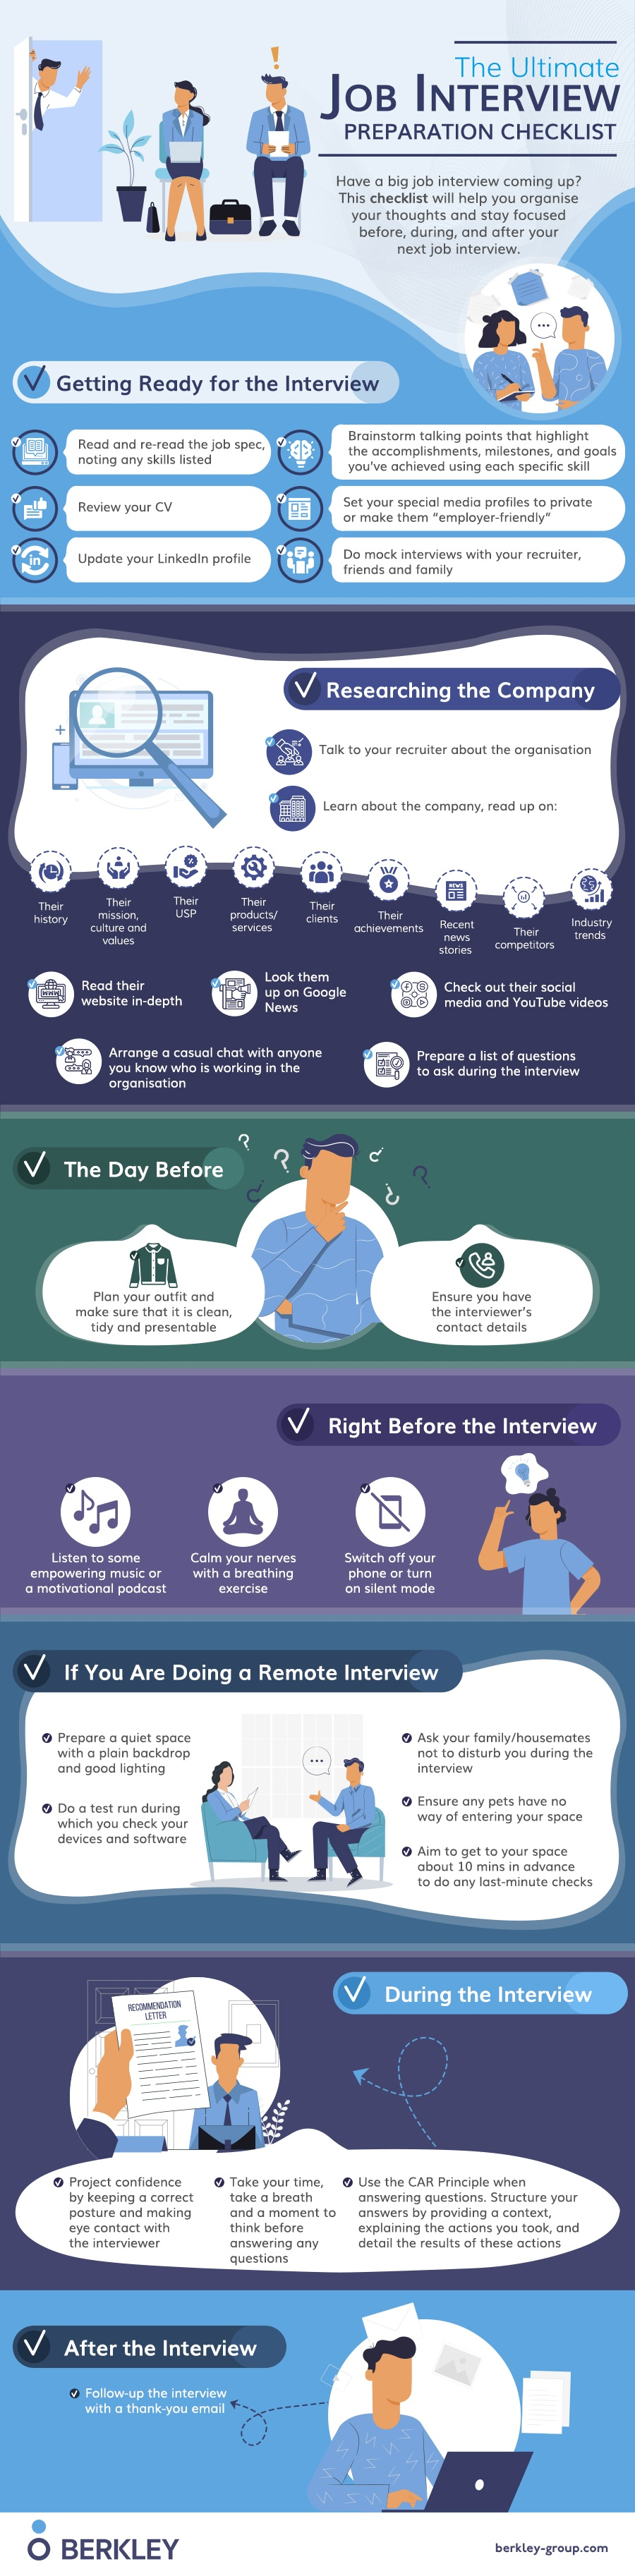 An infographic containing advice on how to prepare for a job interview.